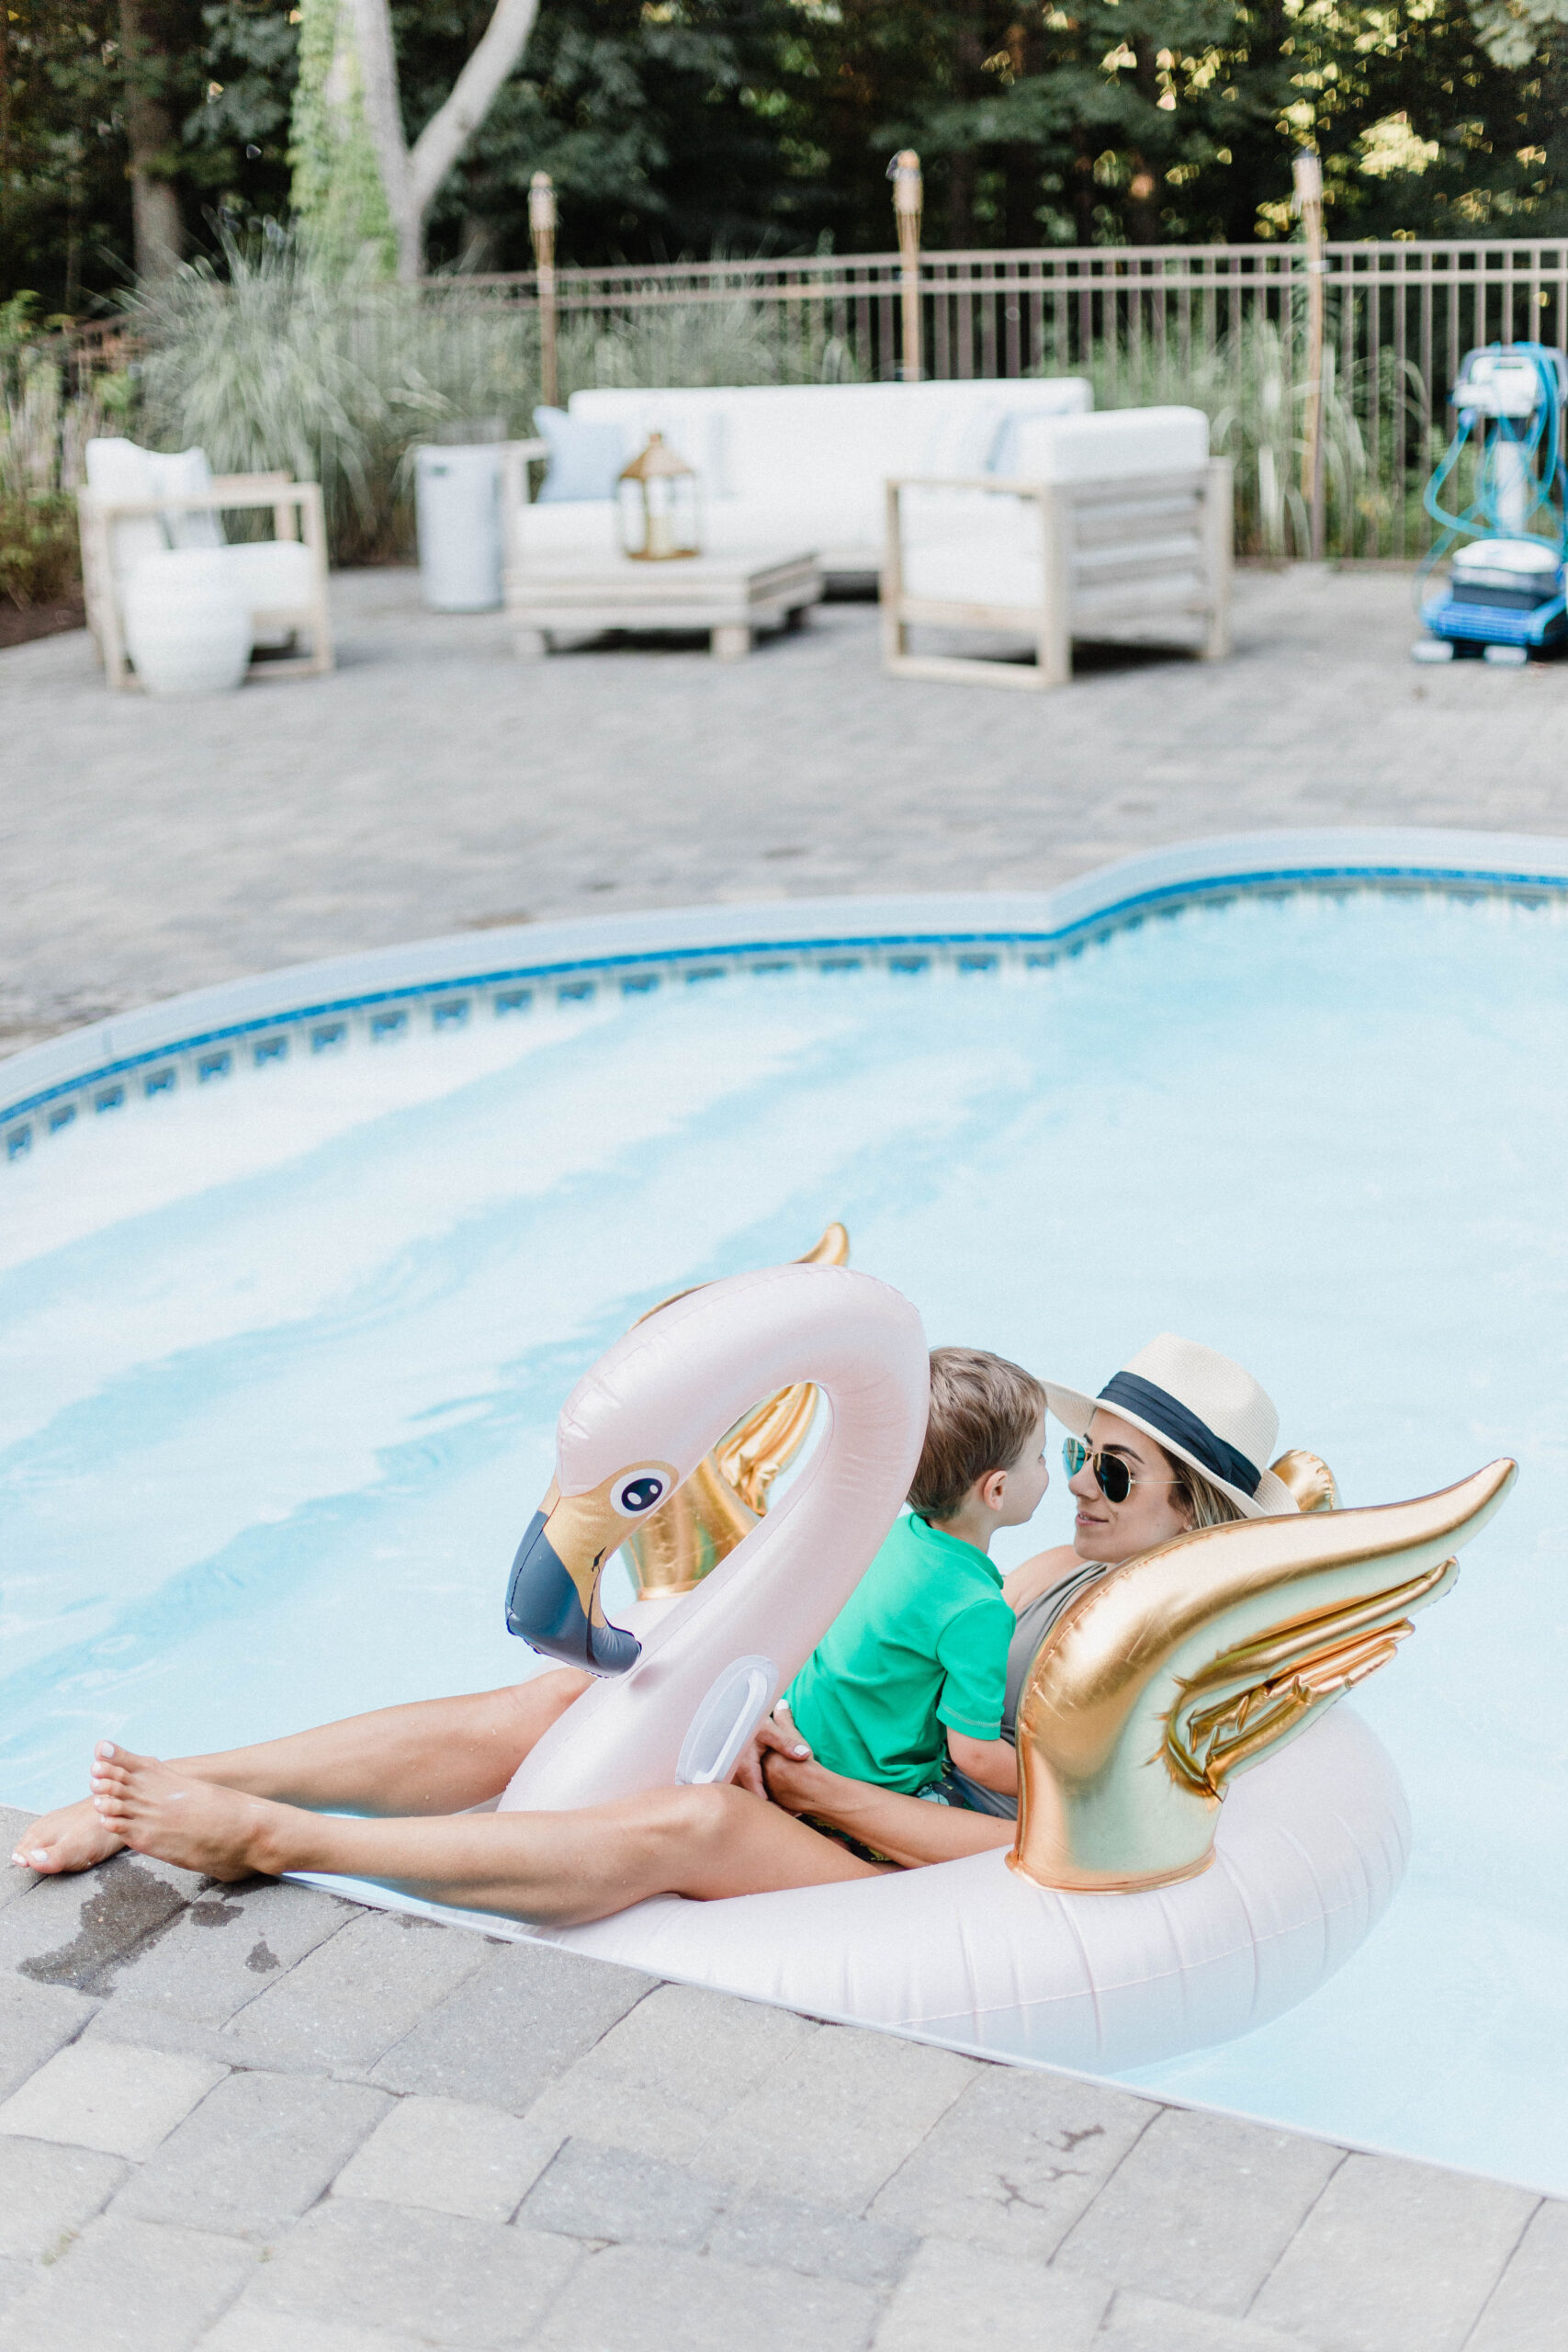 Connecticut life and style blogger Lauren McBride shares a variety of floats and activities for the pool available now on QVC.